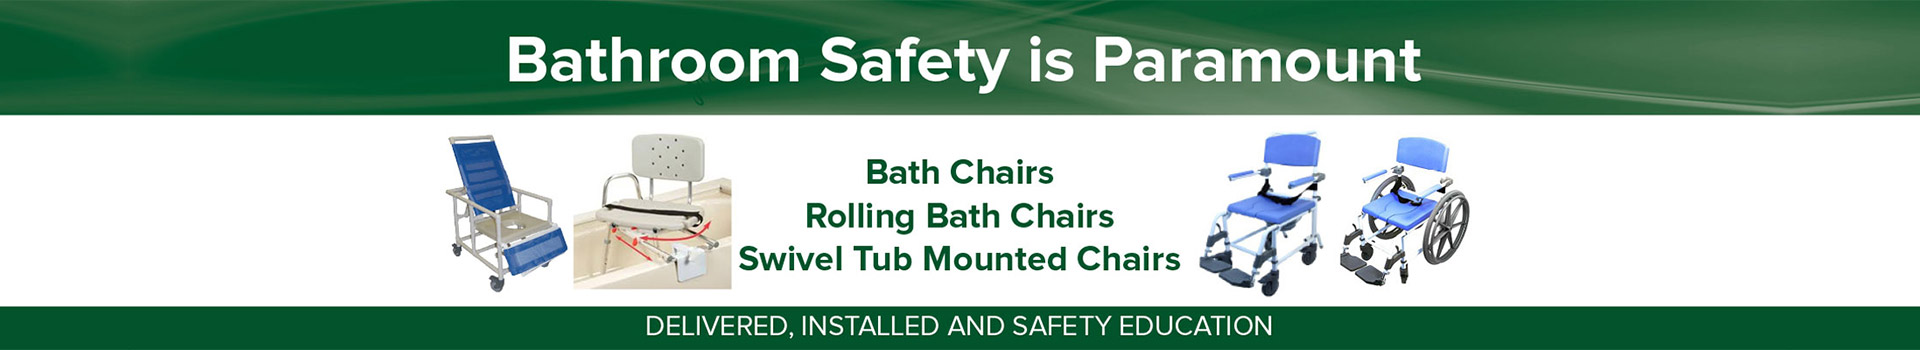 bathroom-safety-2-is-paramount-banner